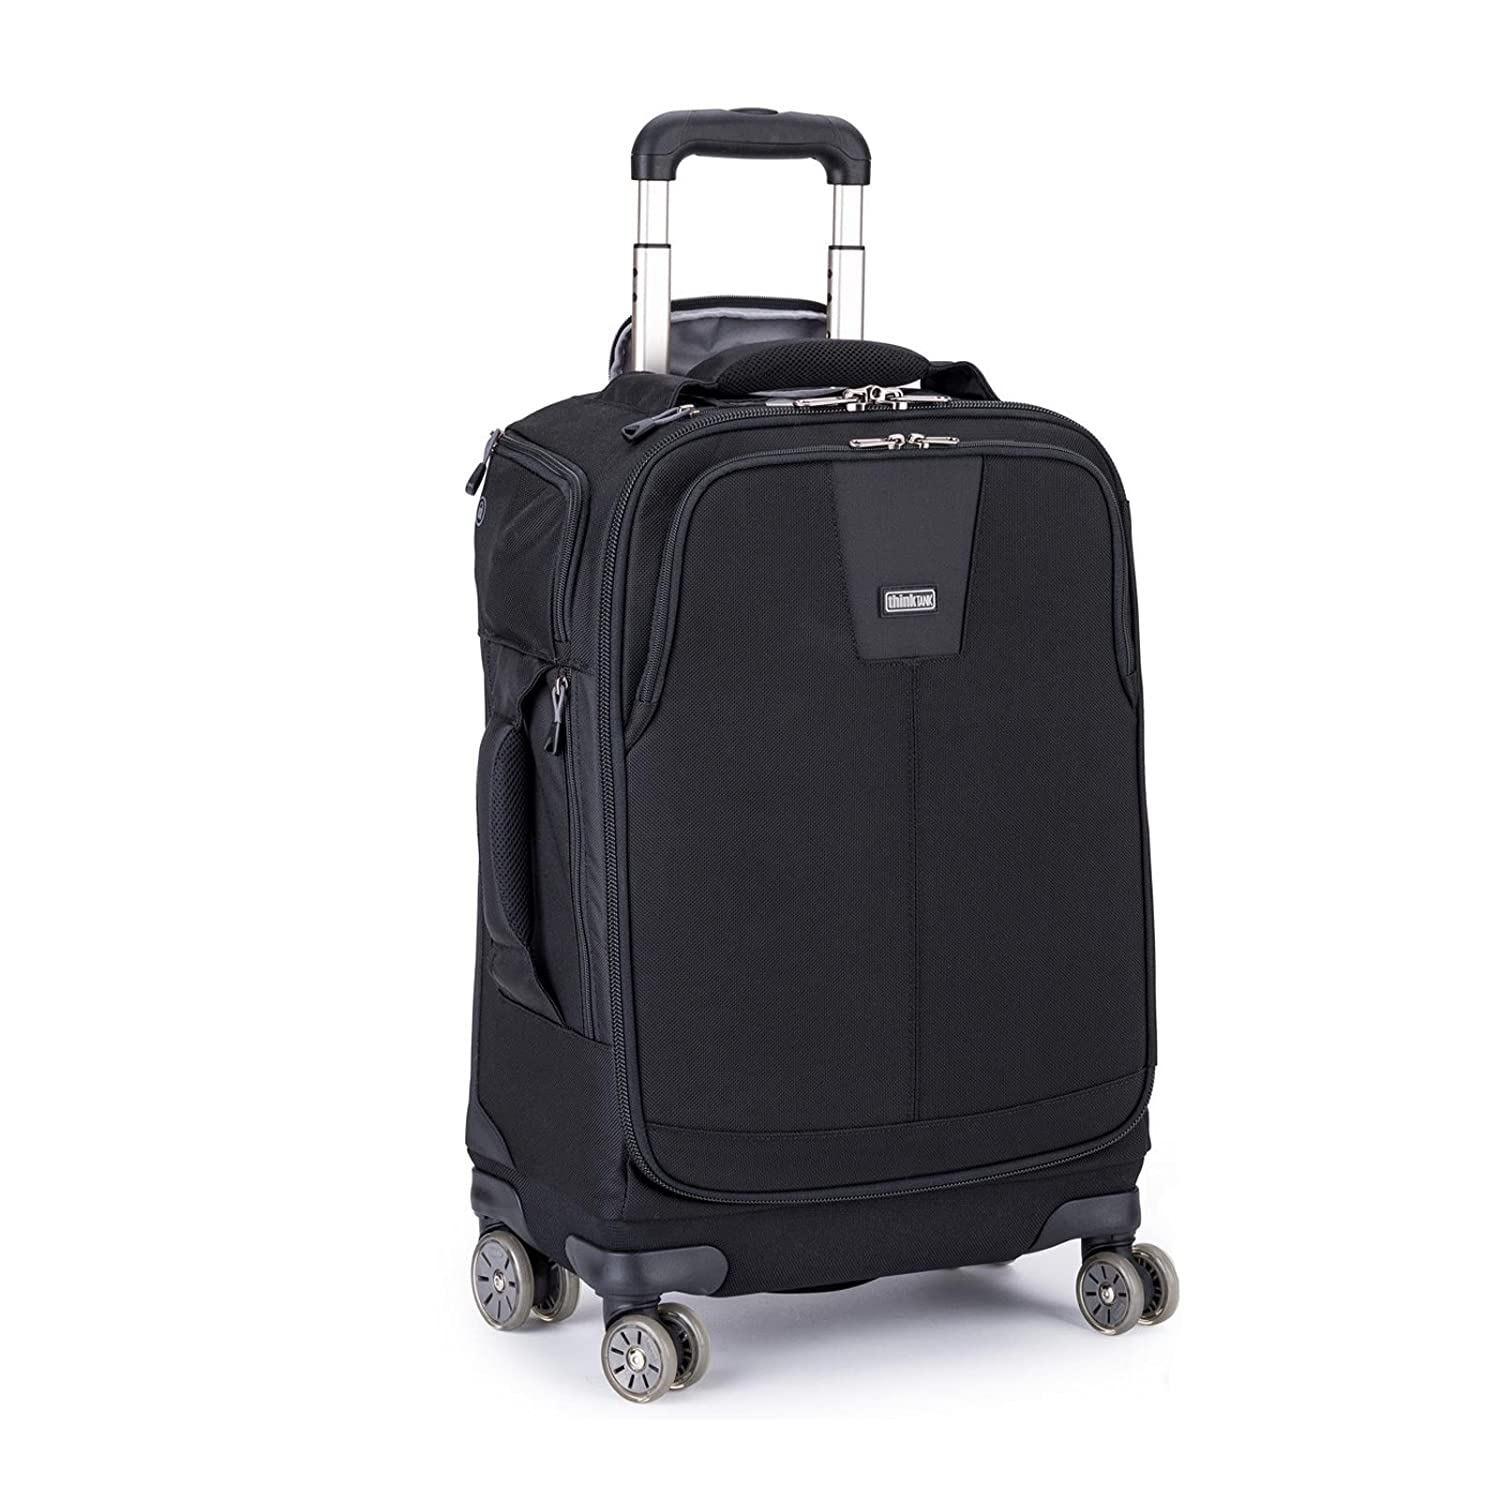 Think Tank Airport Roller Derby Rolling Carry-On Camera Bag (Black)